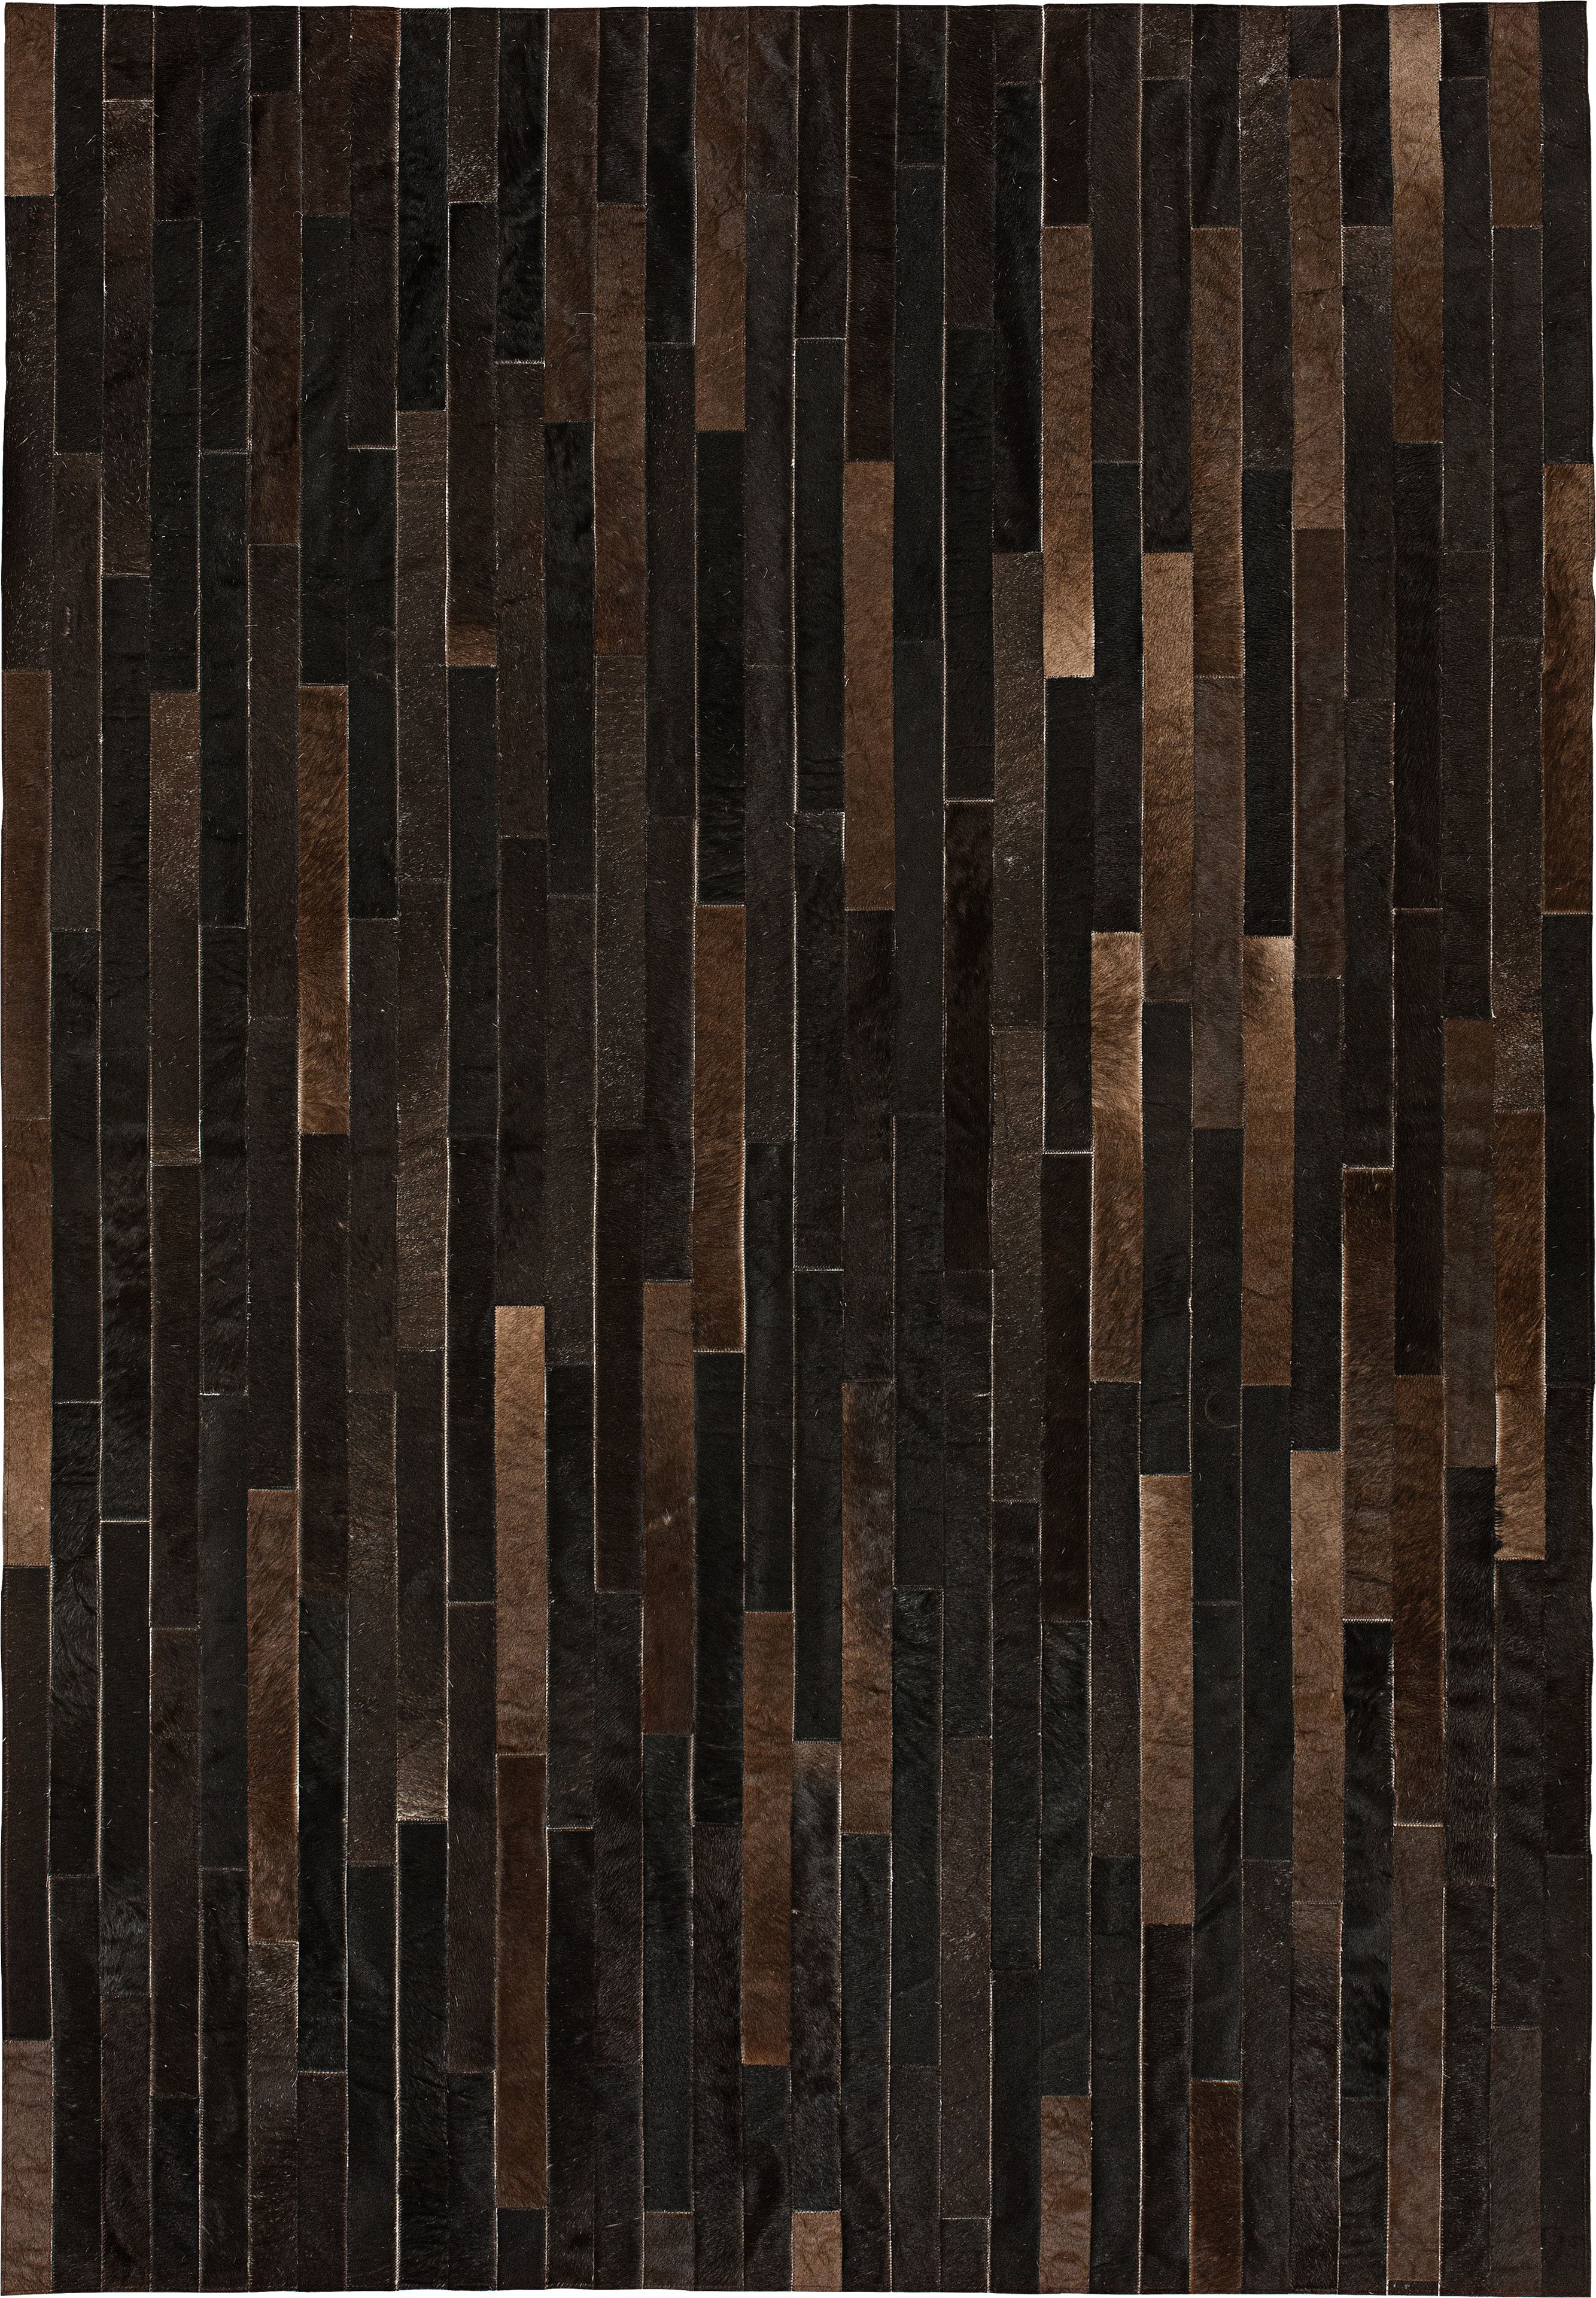 buy caminito patchwork cowhide rug umber by pampas leather made to order designer